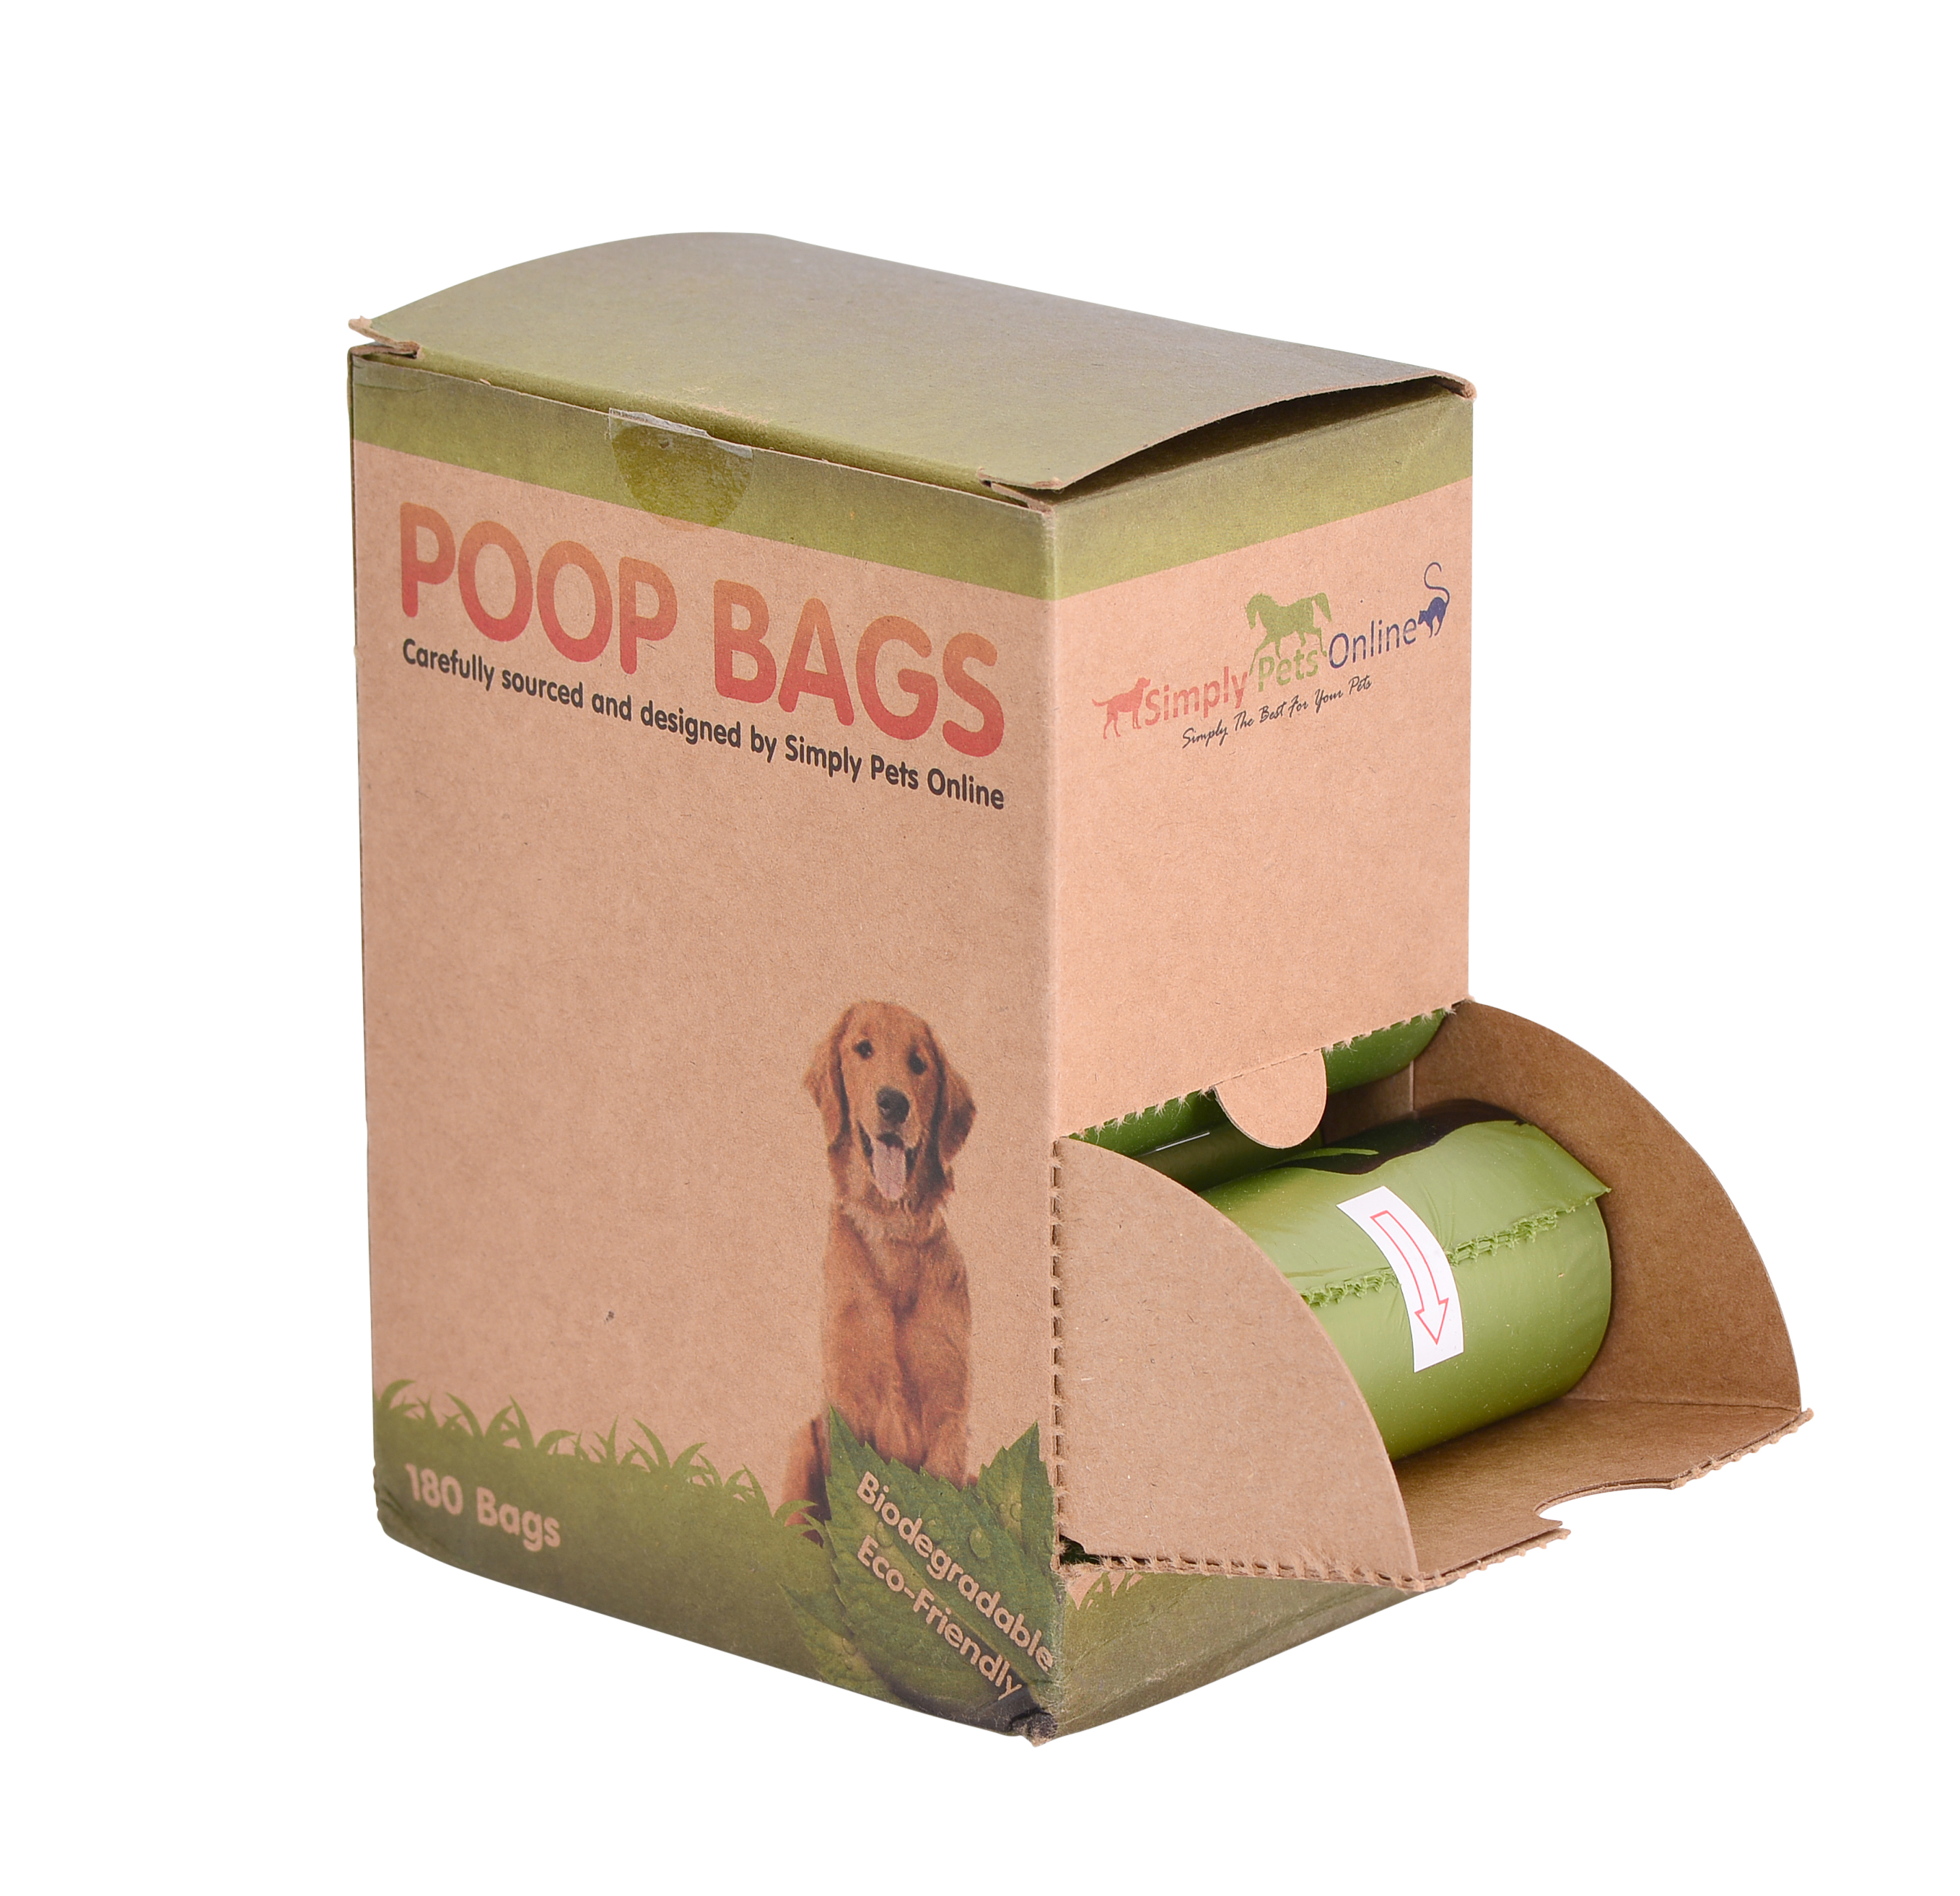 A degradable dog poop bag, shown inside the carton it comes in, 180 bags in a box on 12 rolls